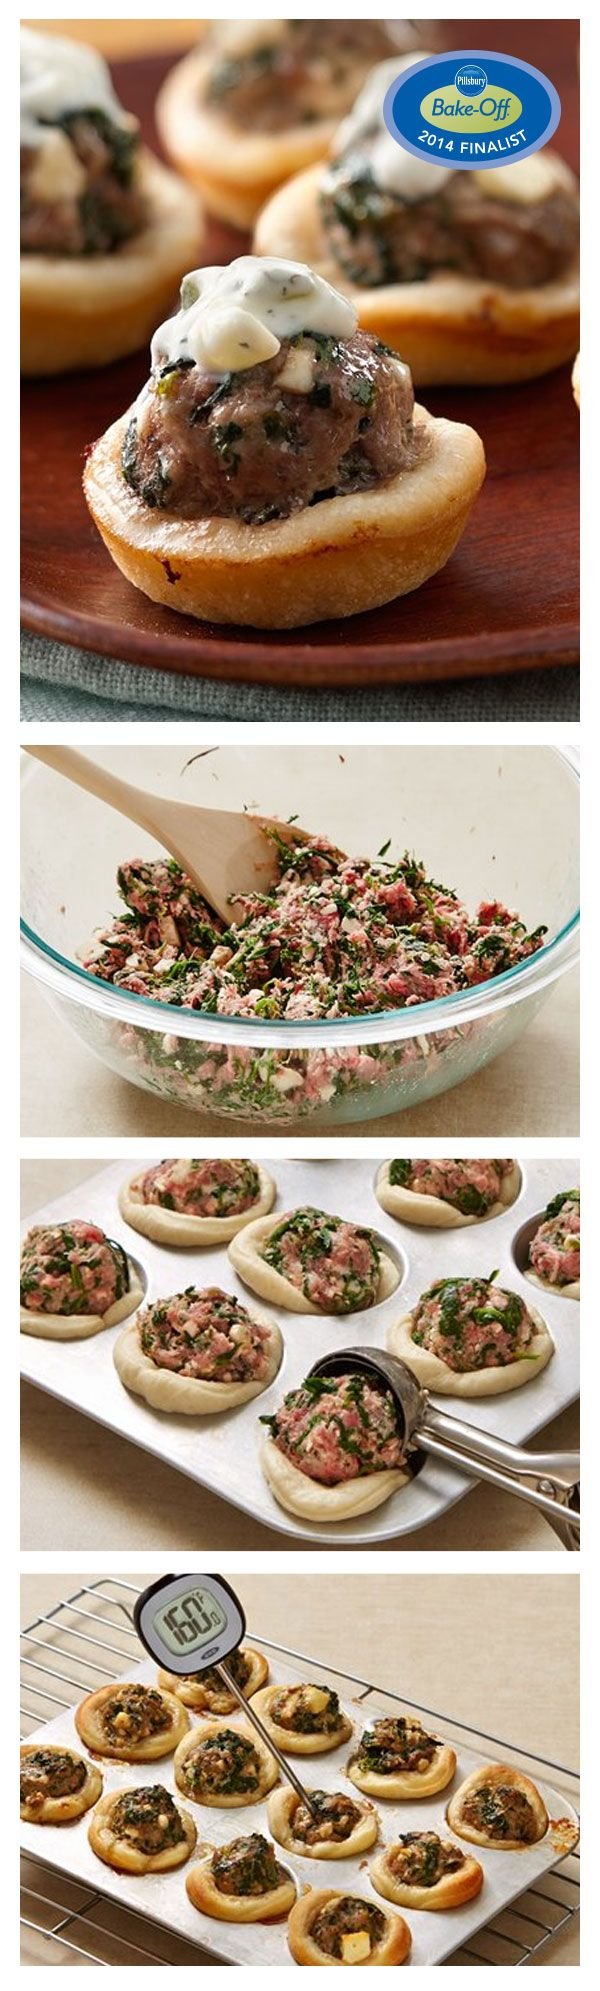 47th Bake-Off Contest Finalist: Greek-Style Meatball Bites by Susan Krauss from Redwood City, CA